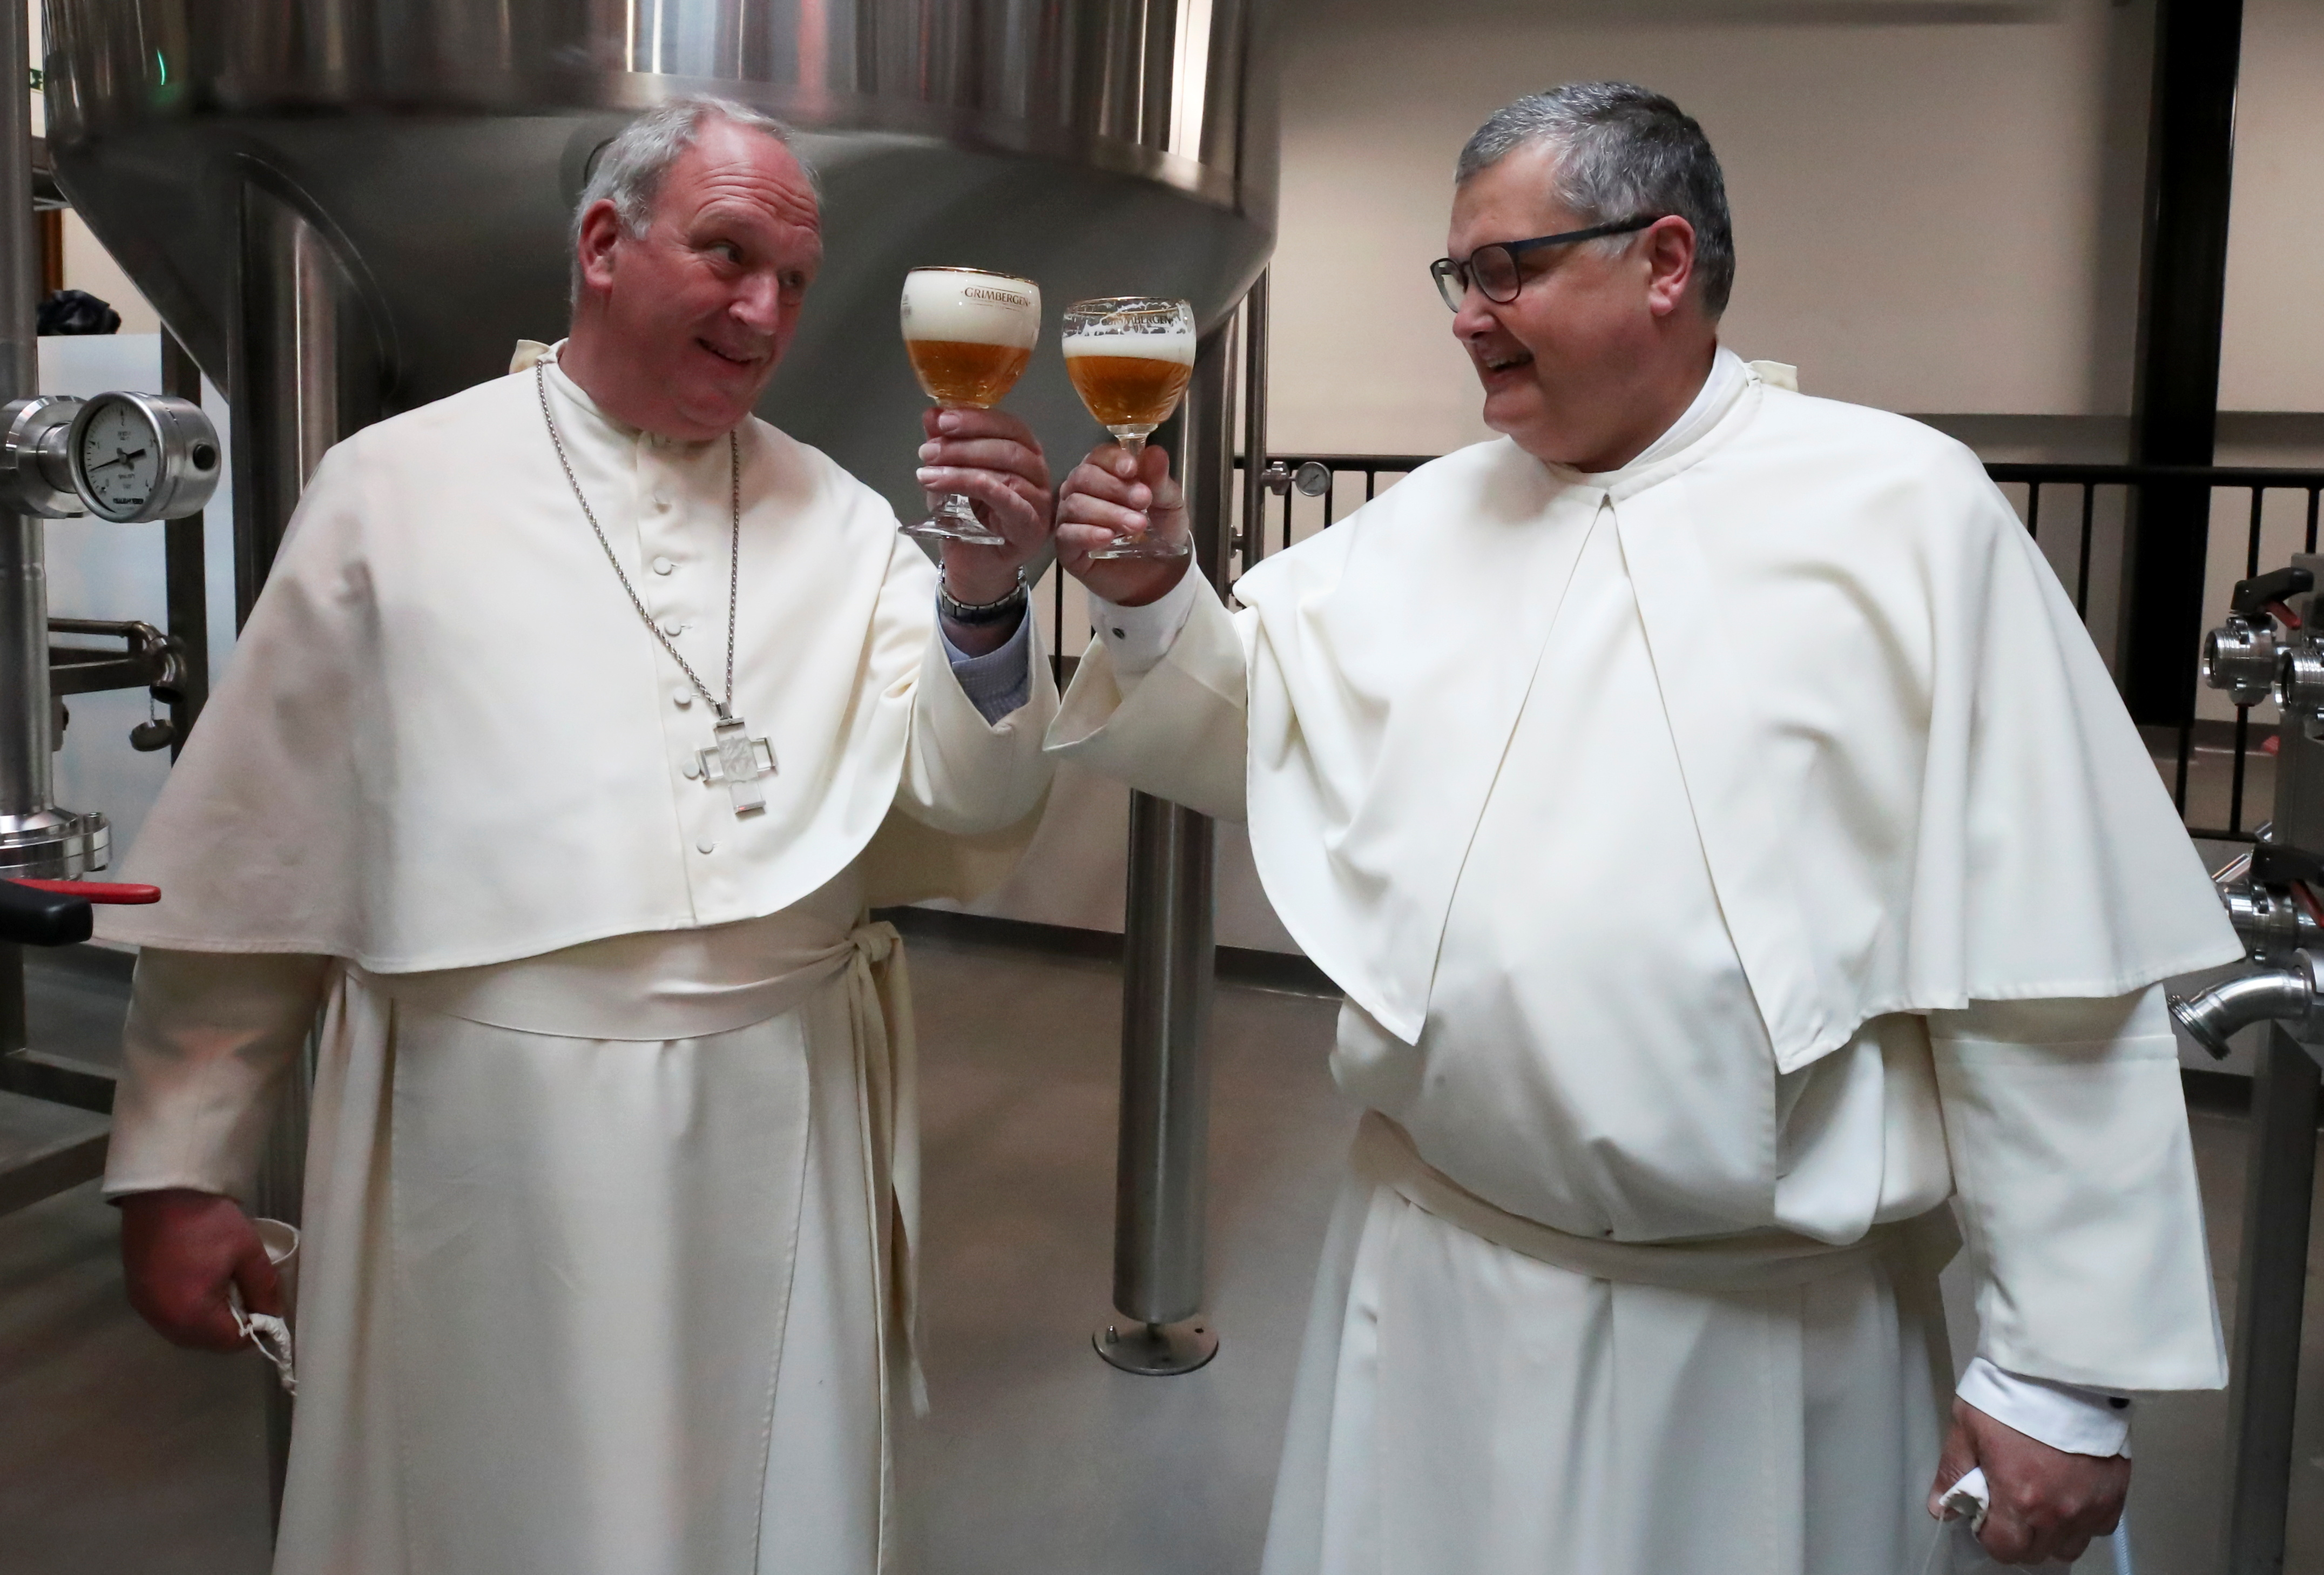 Father Karel Stautemas and abbot Erik toast after blessing beer tanks at the Belgian Abbey of Grimbergen, which returns to brewing after a break of more than 200 years with a new microbrewery in Grimbergen, Belgium May 26, 2021. Picture taken May 26, 2021. REUTERS/Yves Herman